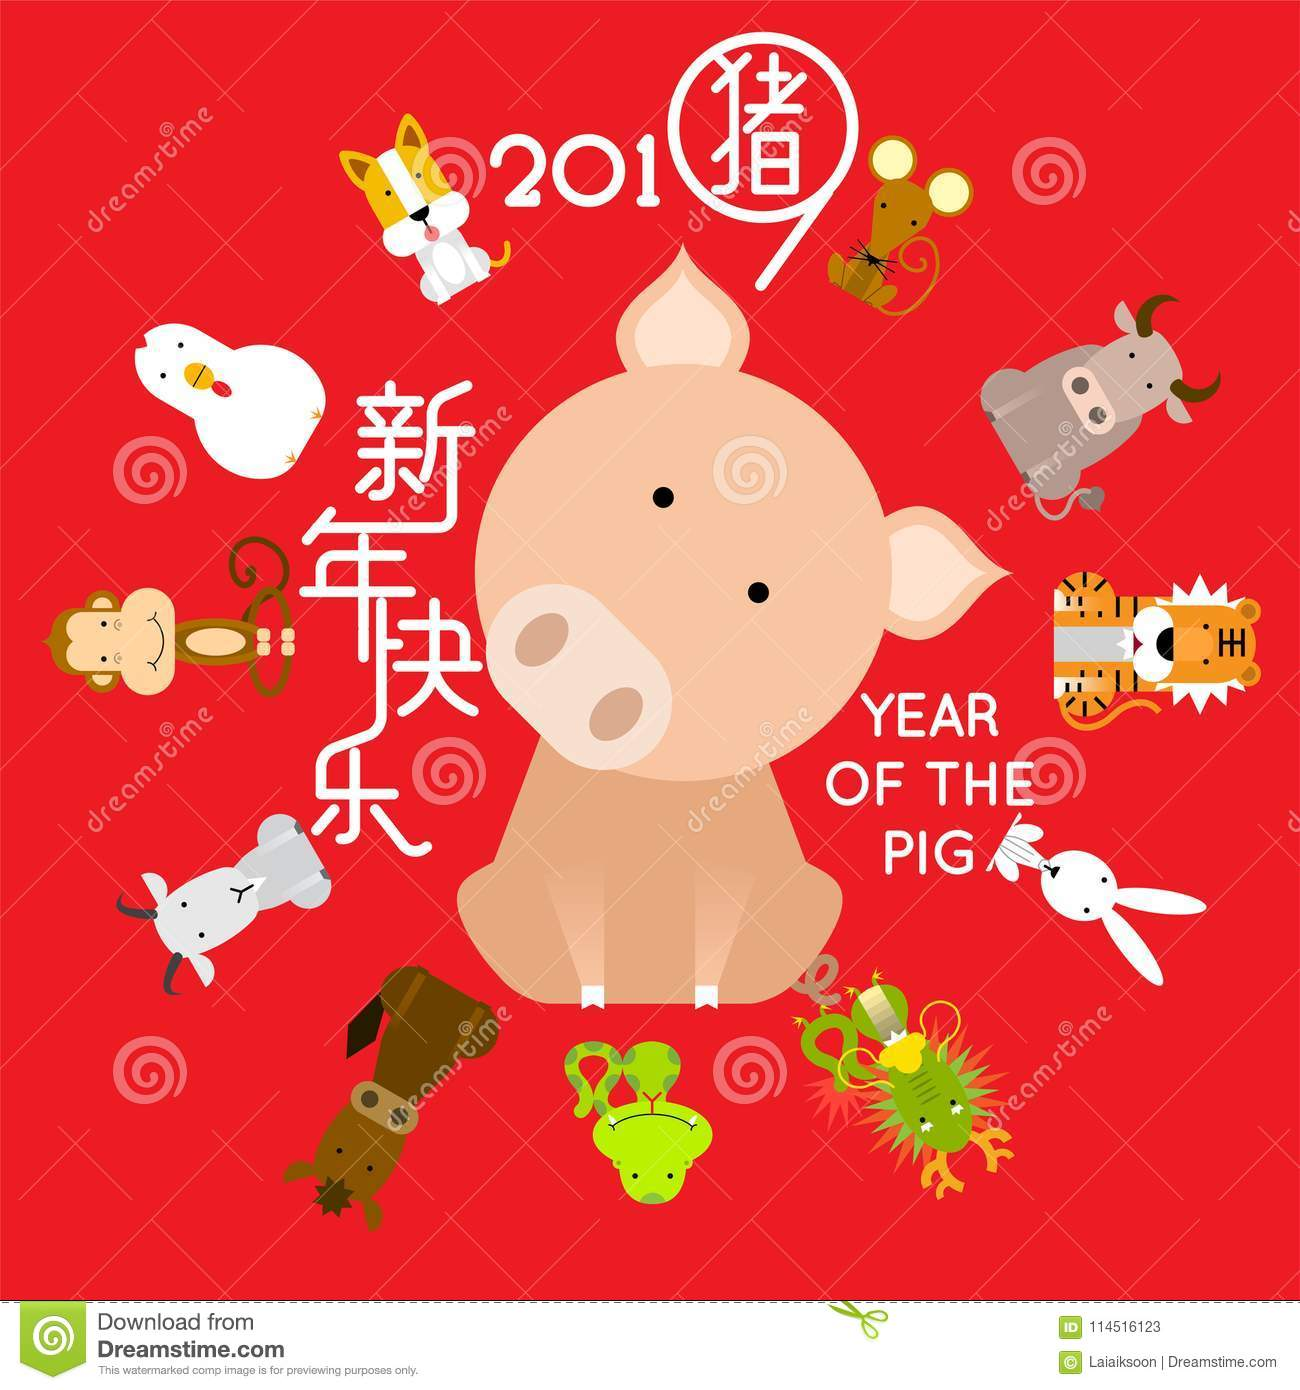 Happy Chinese New Year 2019 Year Of The Pig With 12 Chinese Zodiac Animals Stock Vector Illustration Of Chinese Celebration 114516123